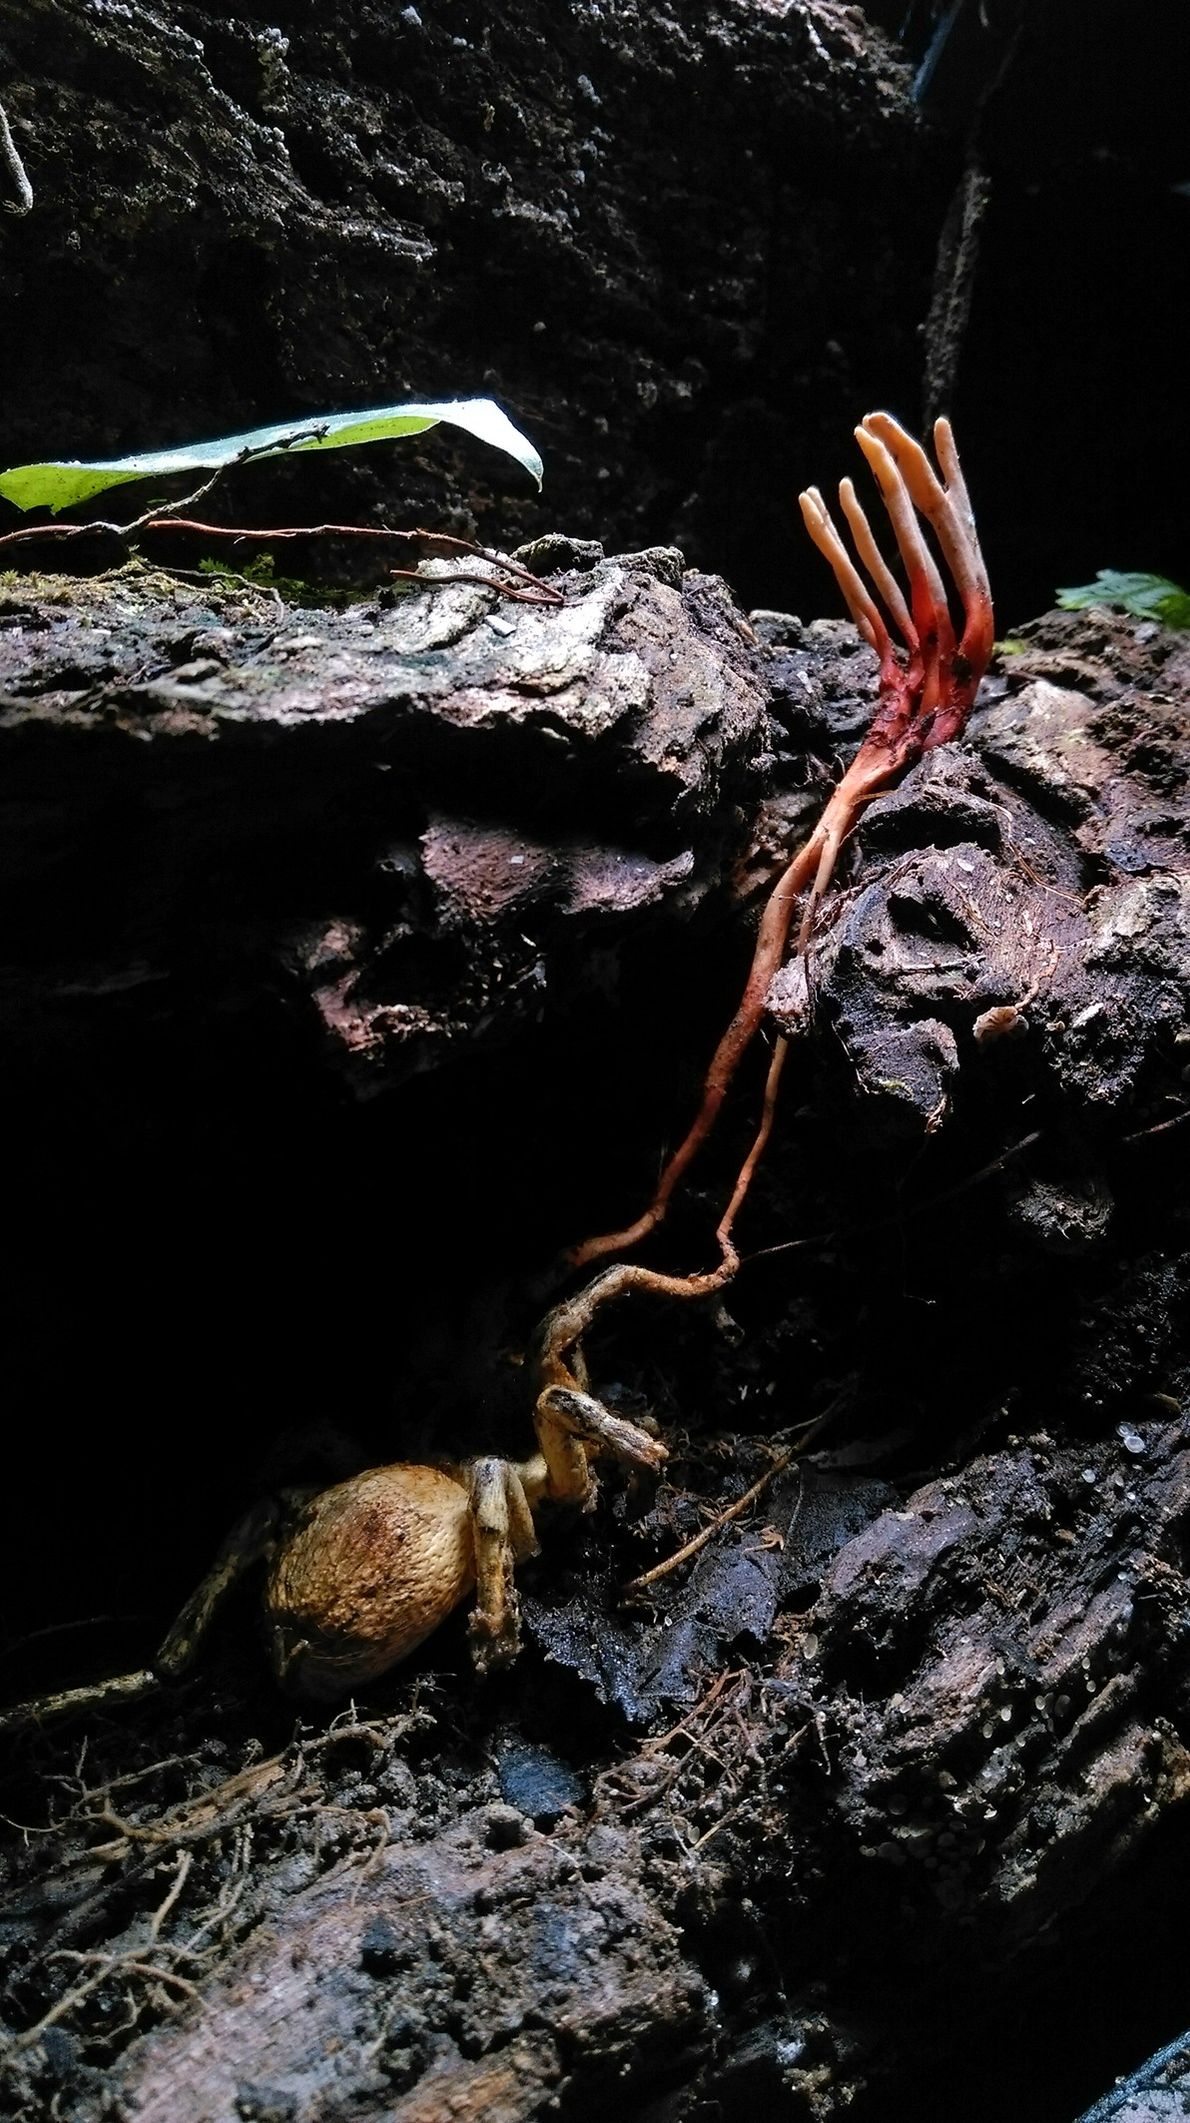 Rio Claro Reserve, Colombia - Cordyceps, a parasitic fungi, grow from out of a tarantula.